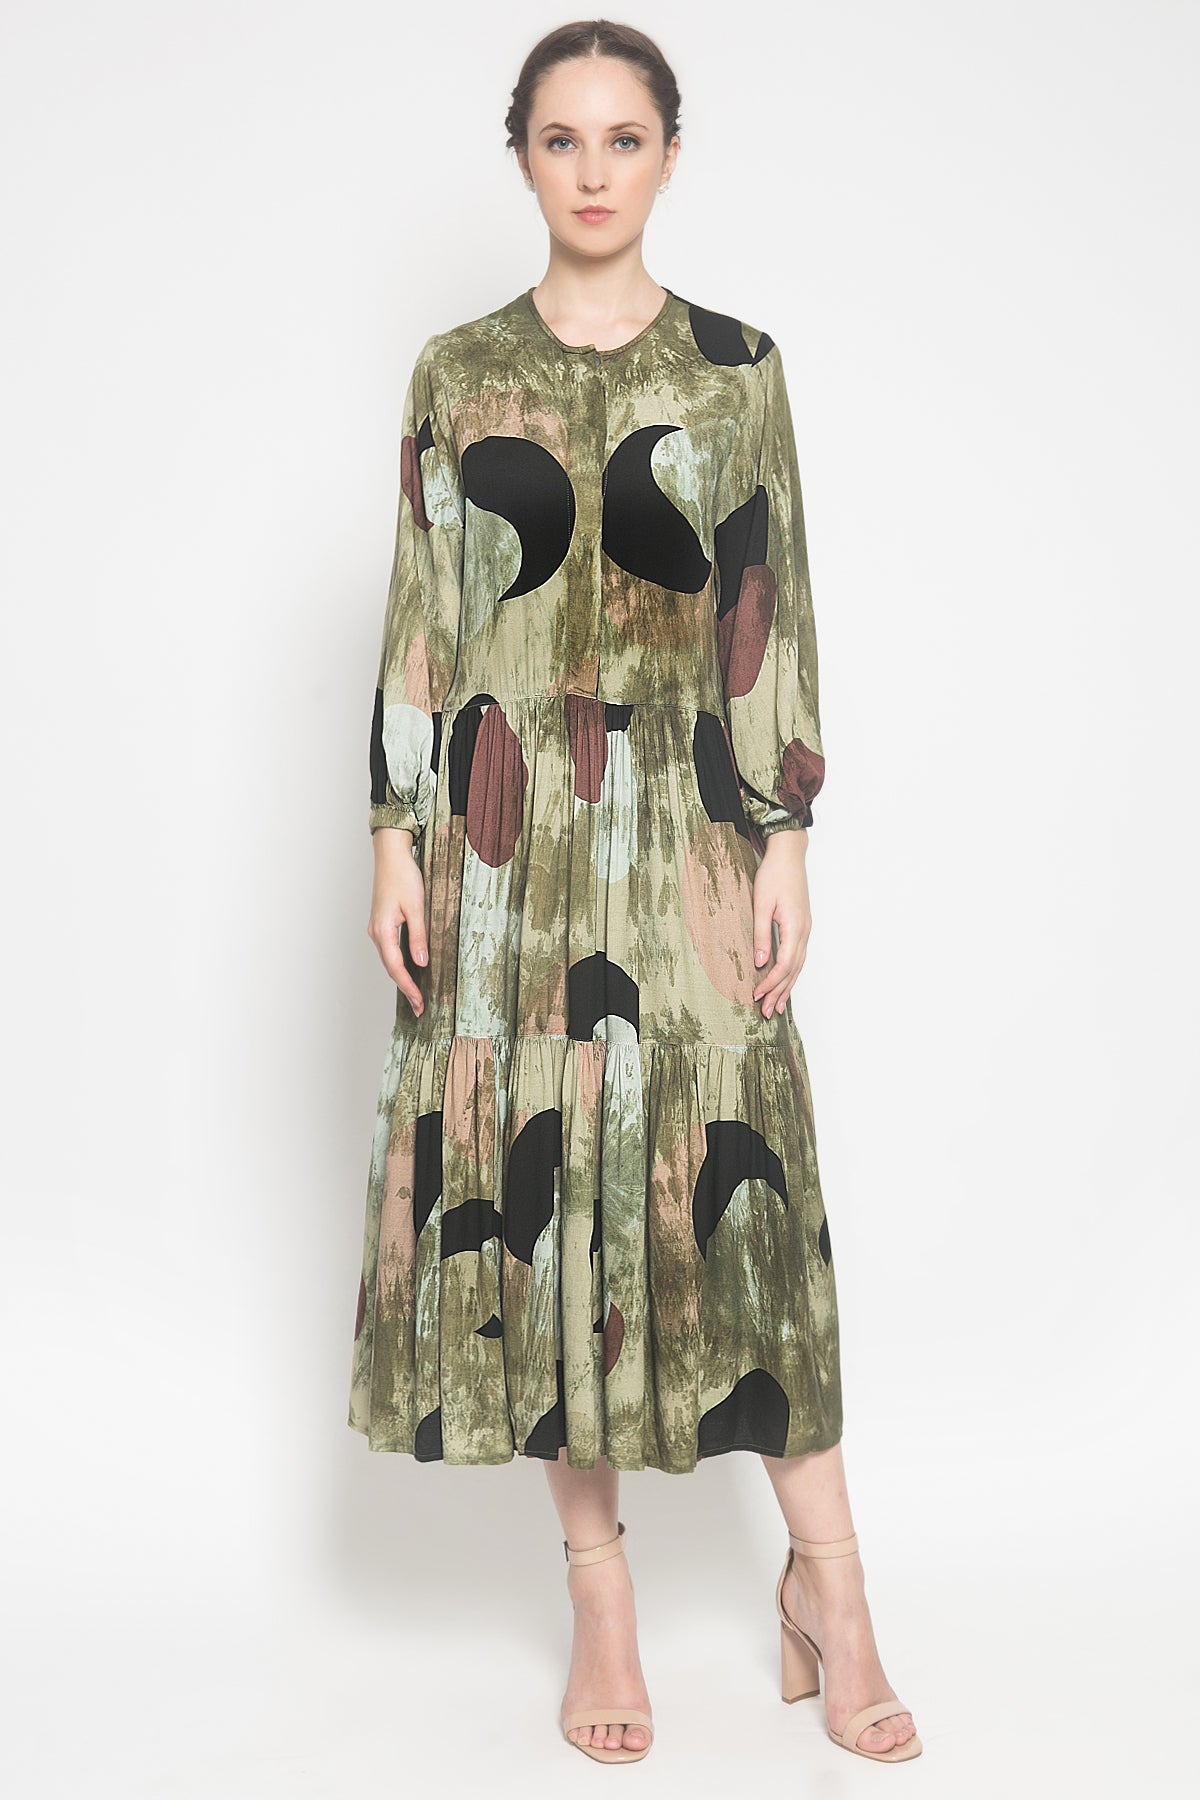 Prairie Dress in Moss